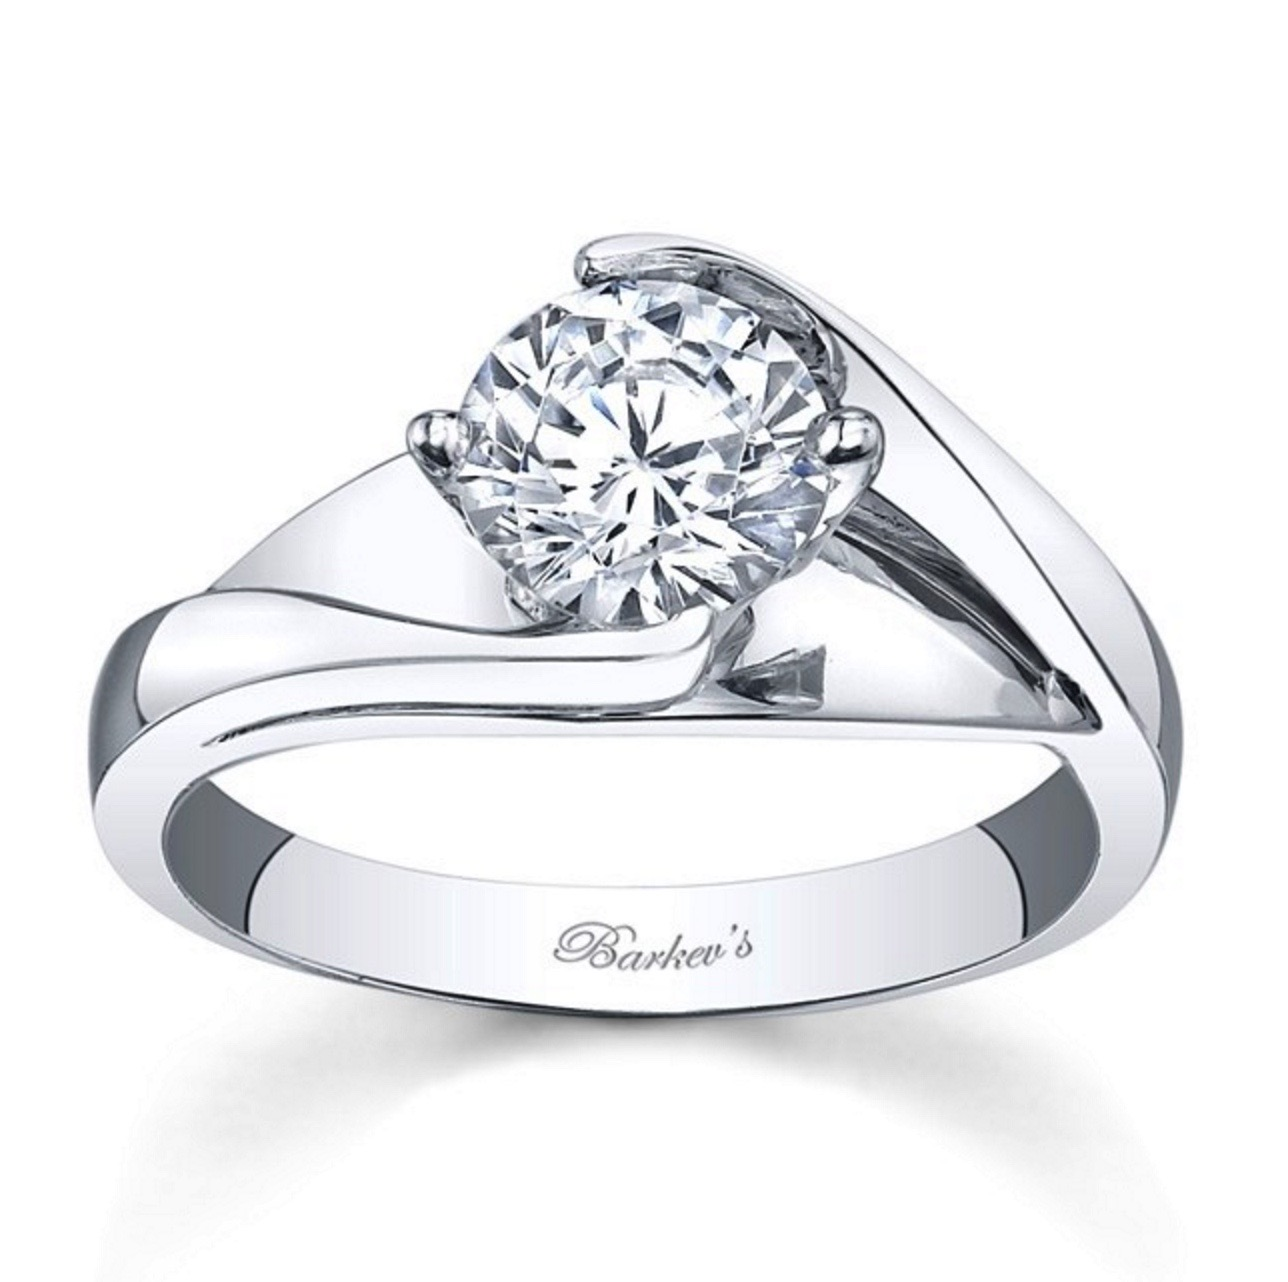 Diamond Engagement Ring - Barkev White Gold Solitaire